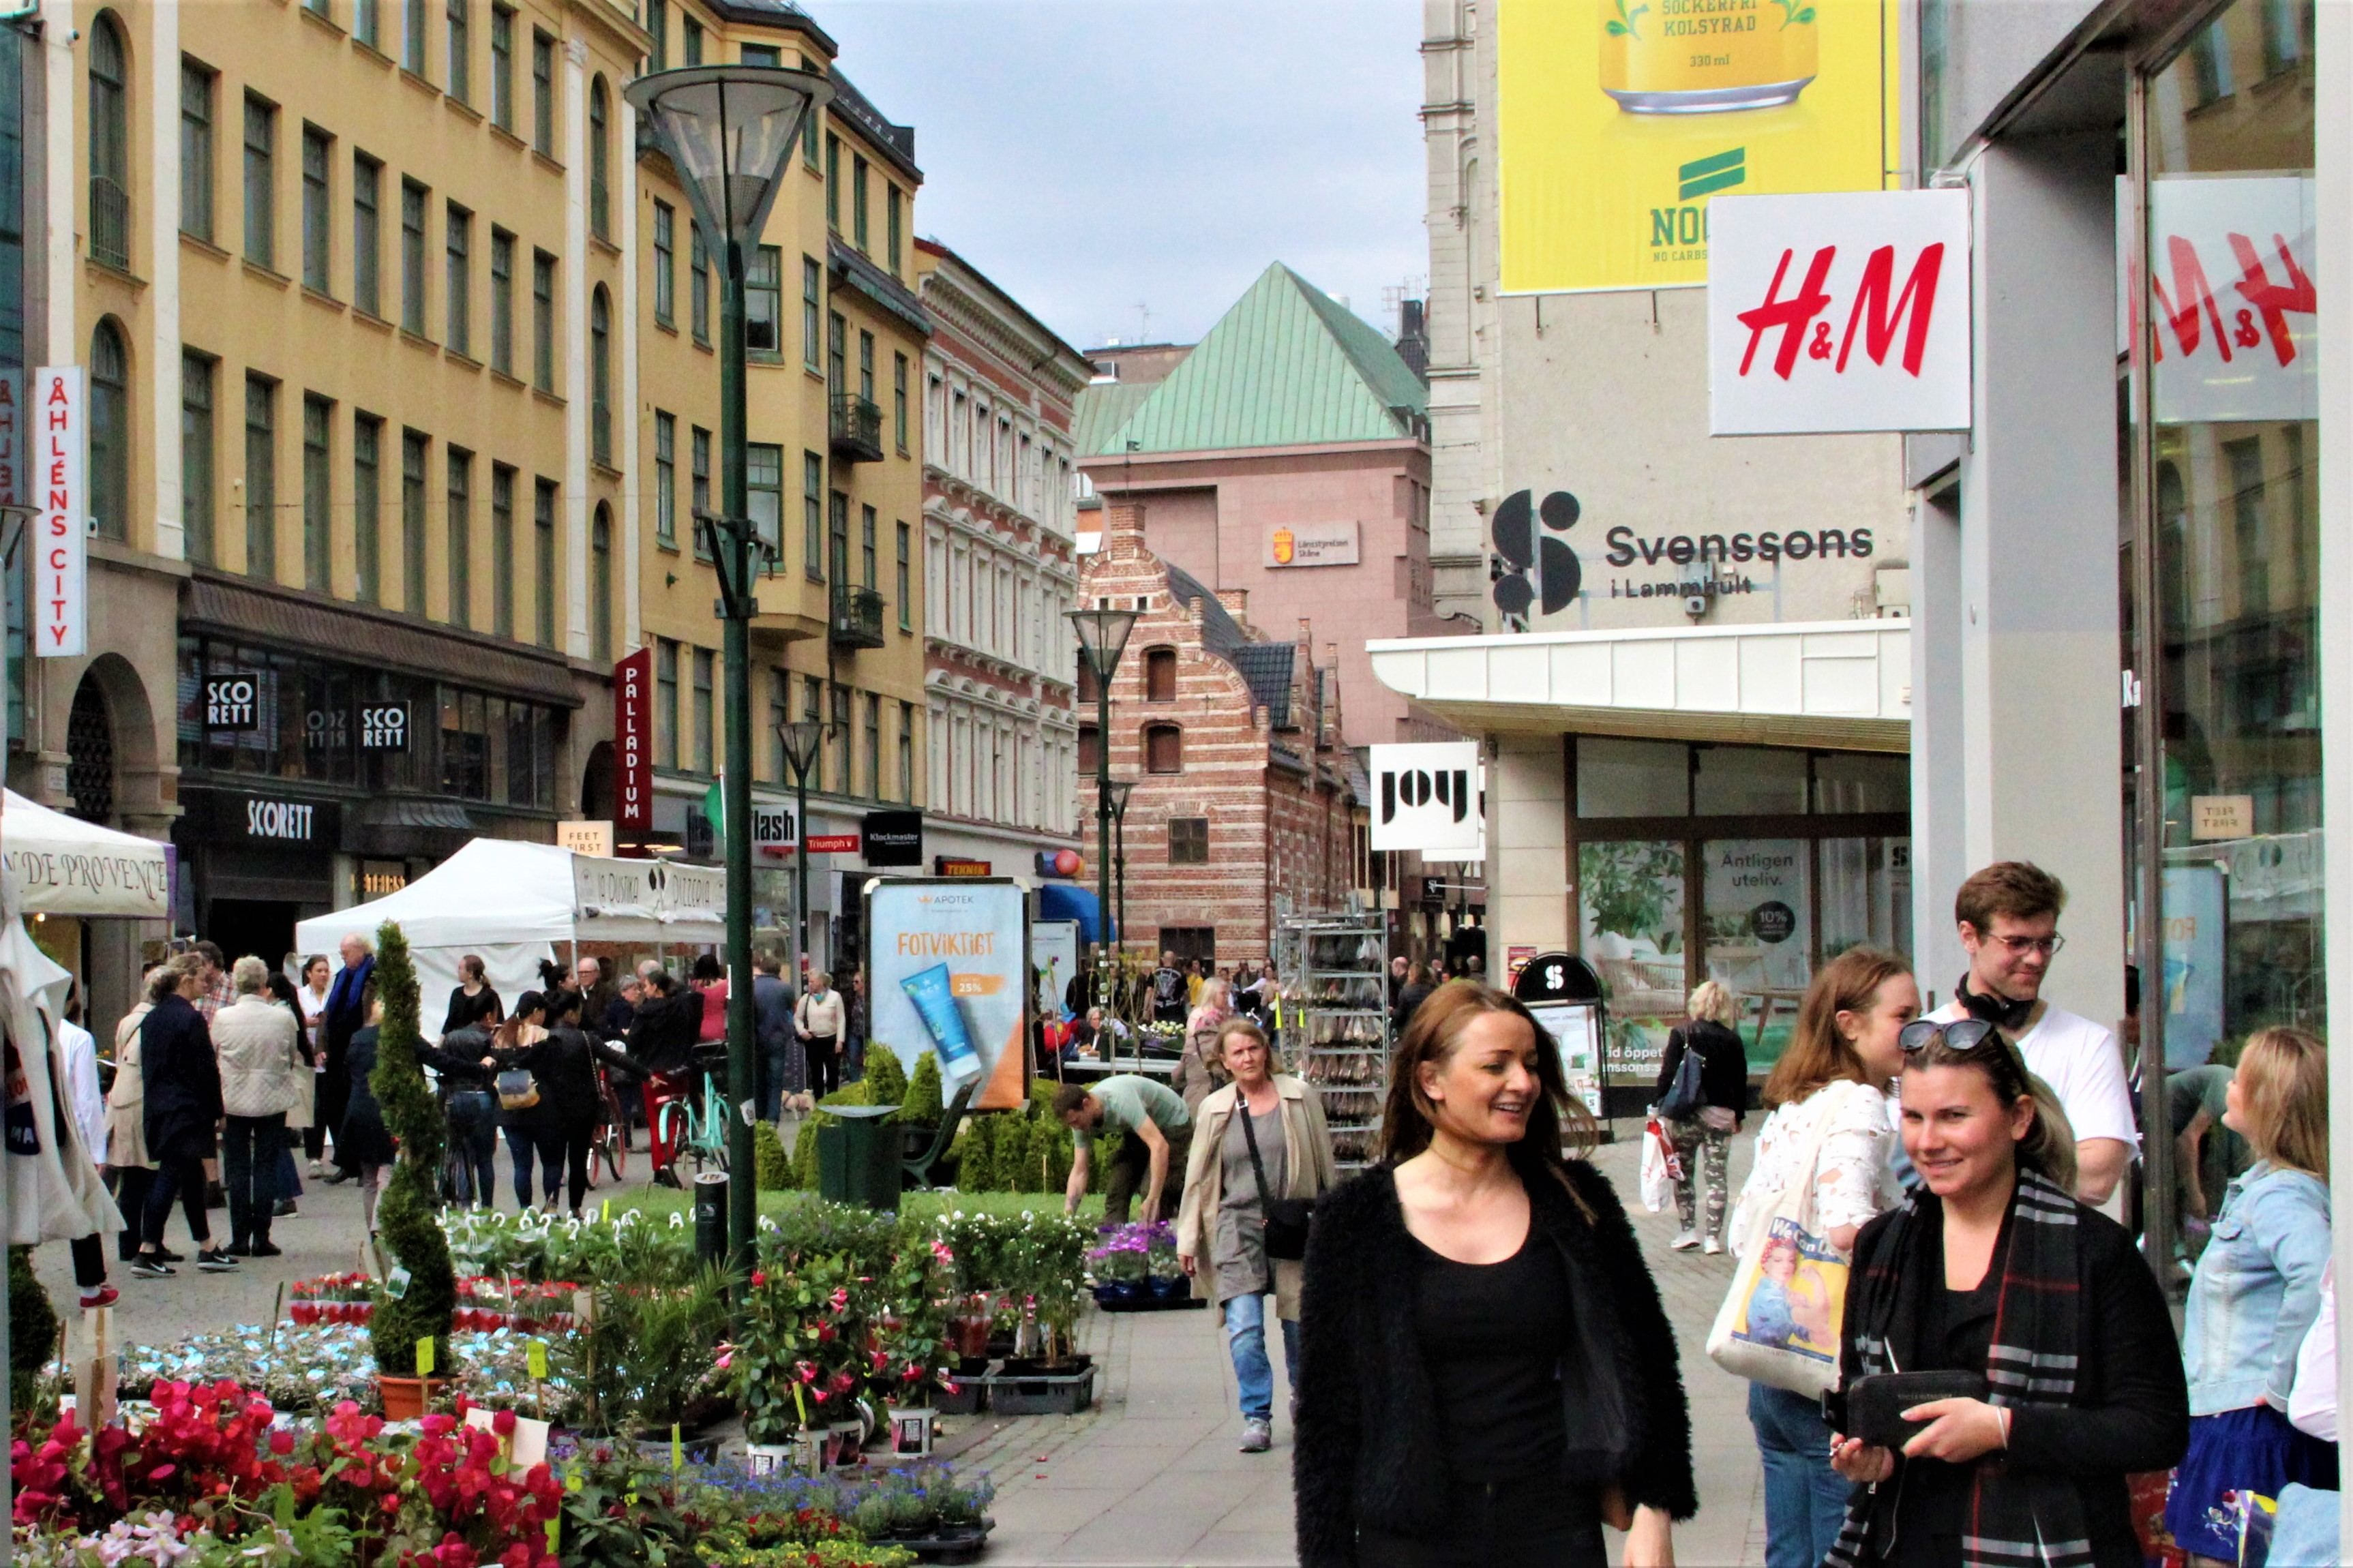 Shop on Södergatan shopping street on a day trip to Sweden.